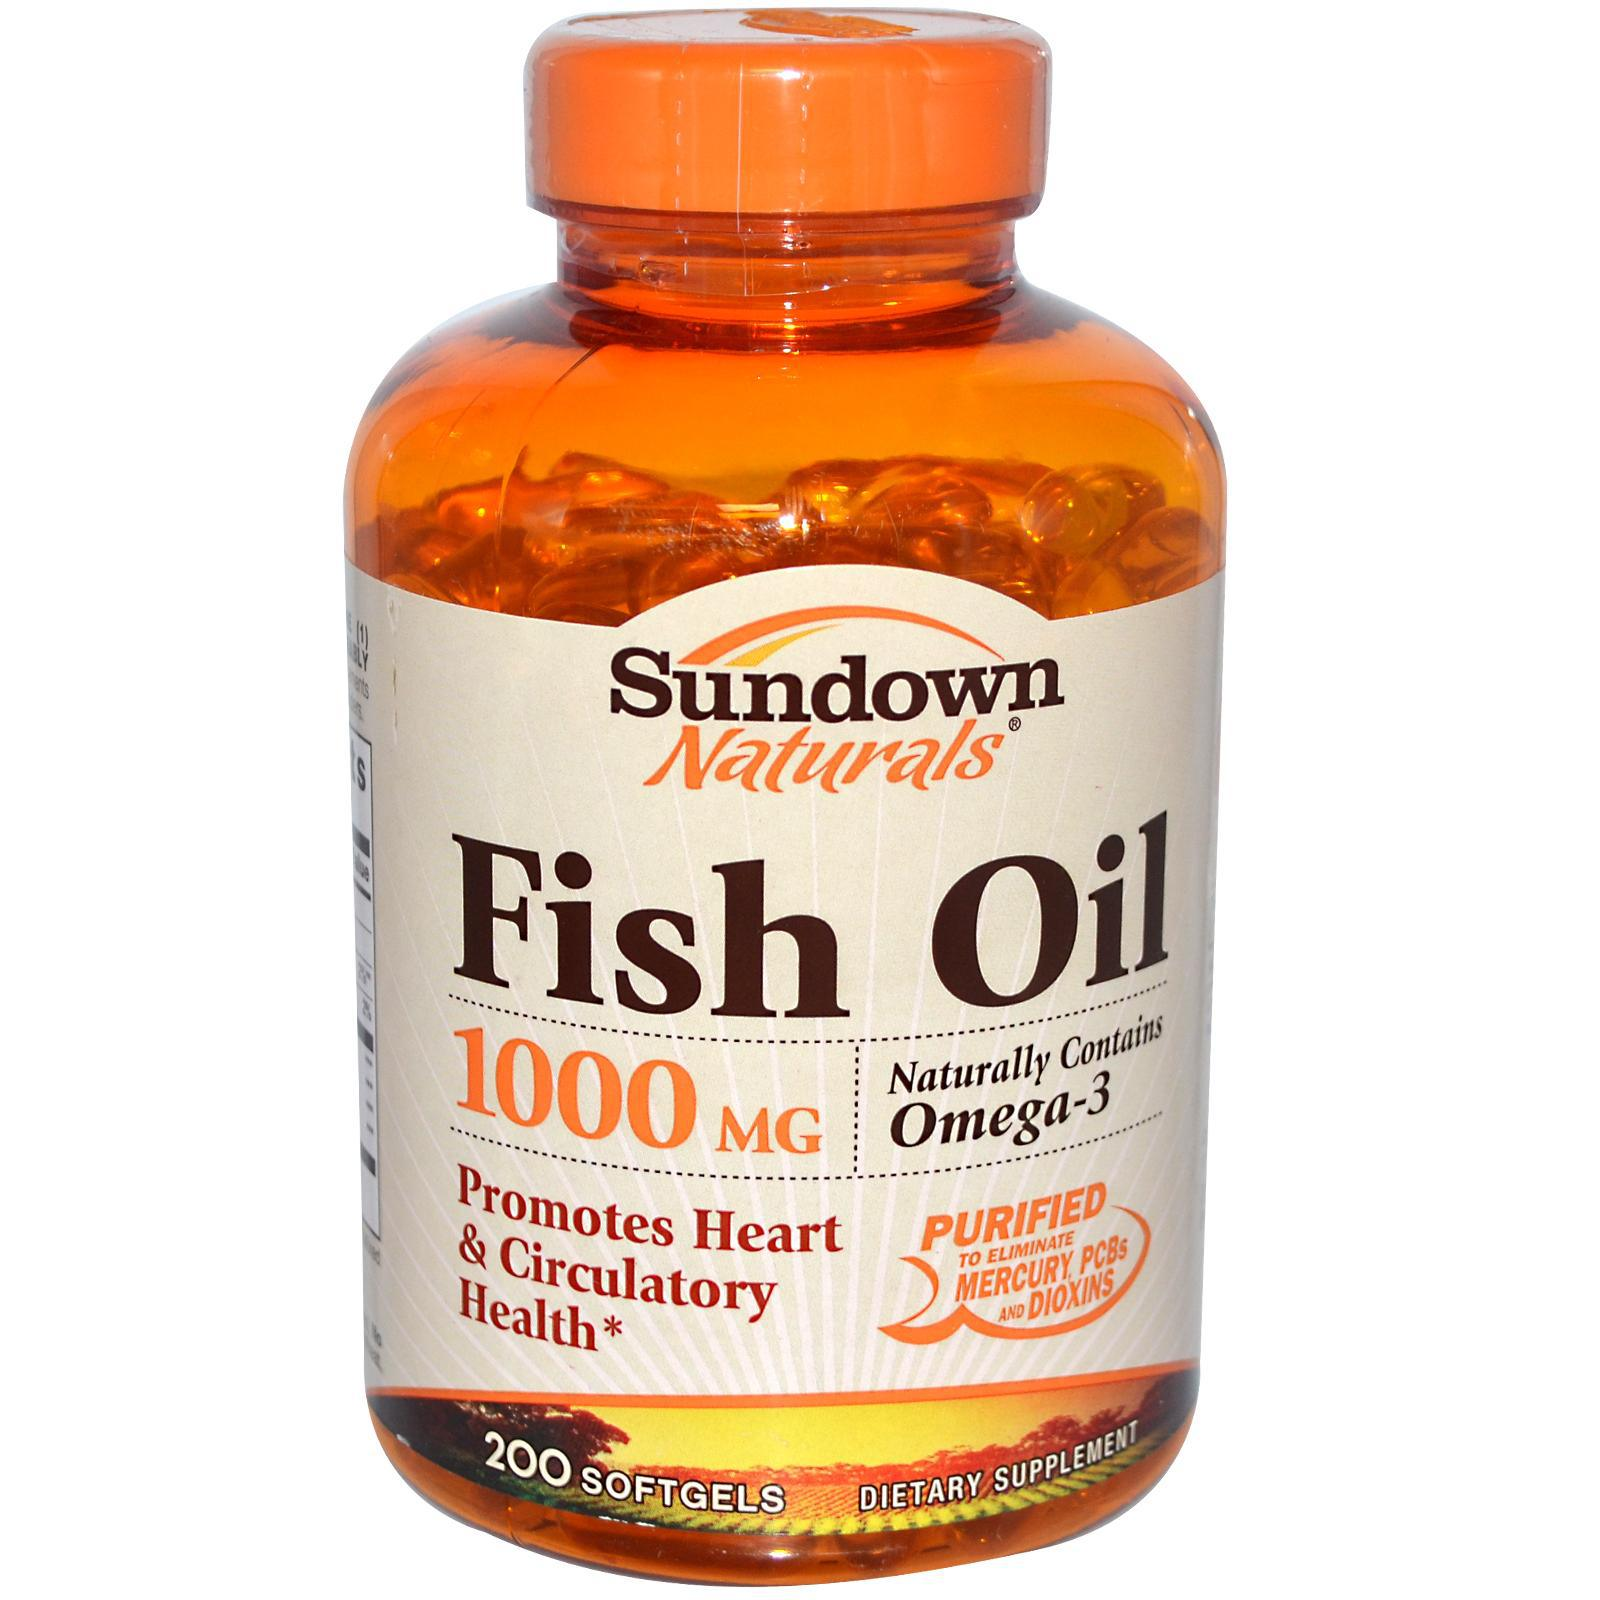 Top 10 best fish oil supplements currently for Fish oil for bodybuilding